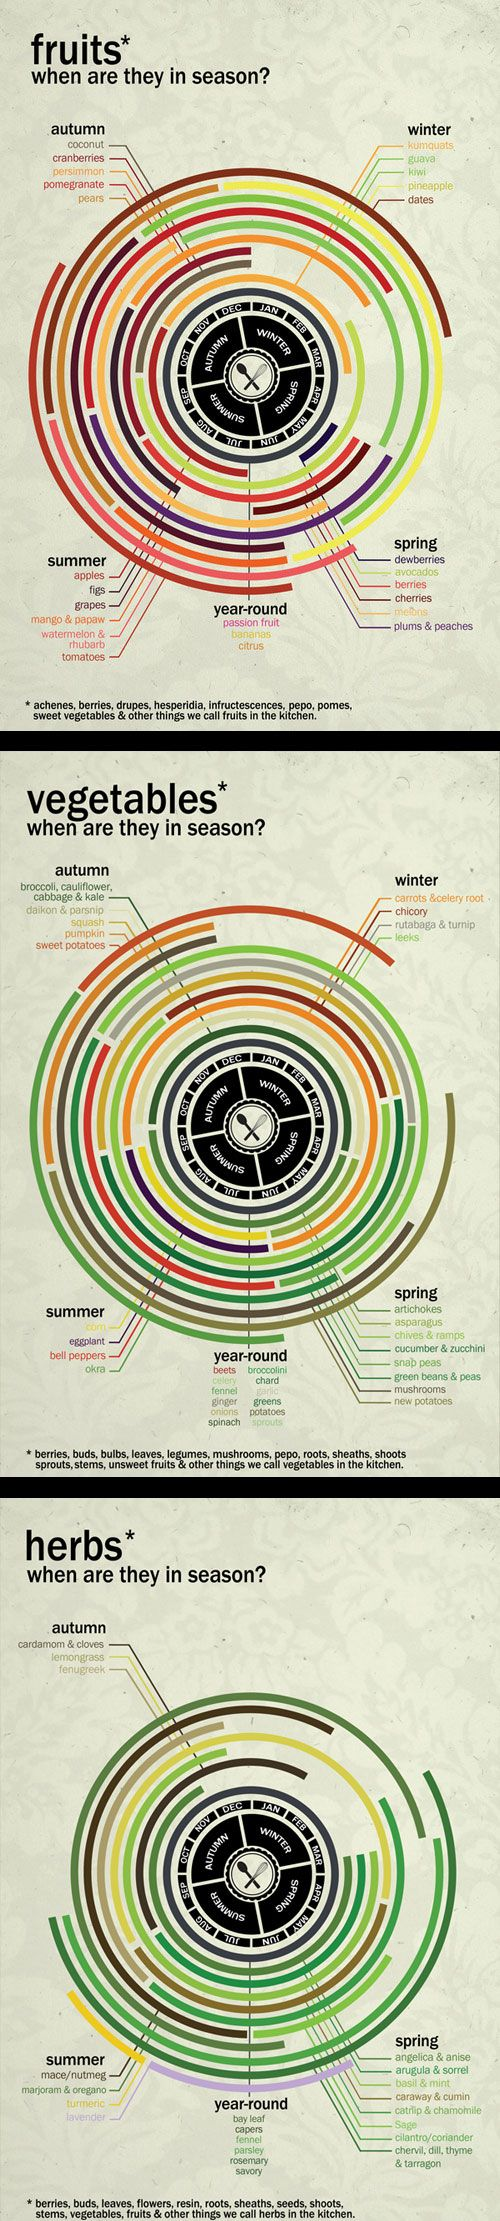 Seasonal Produce Calendars  The availability of produce in the northern hemisphere by month and season. (Russell van Kraayenburg)